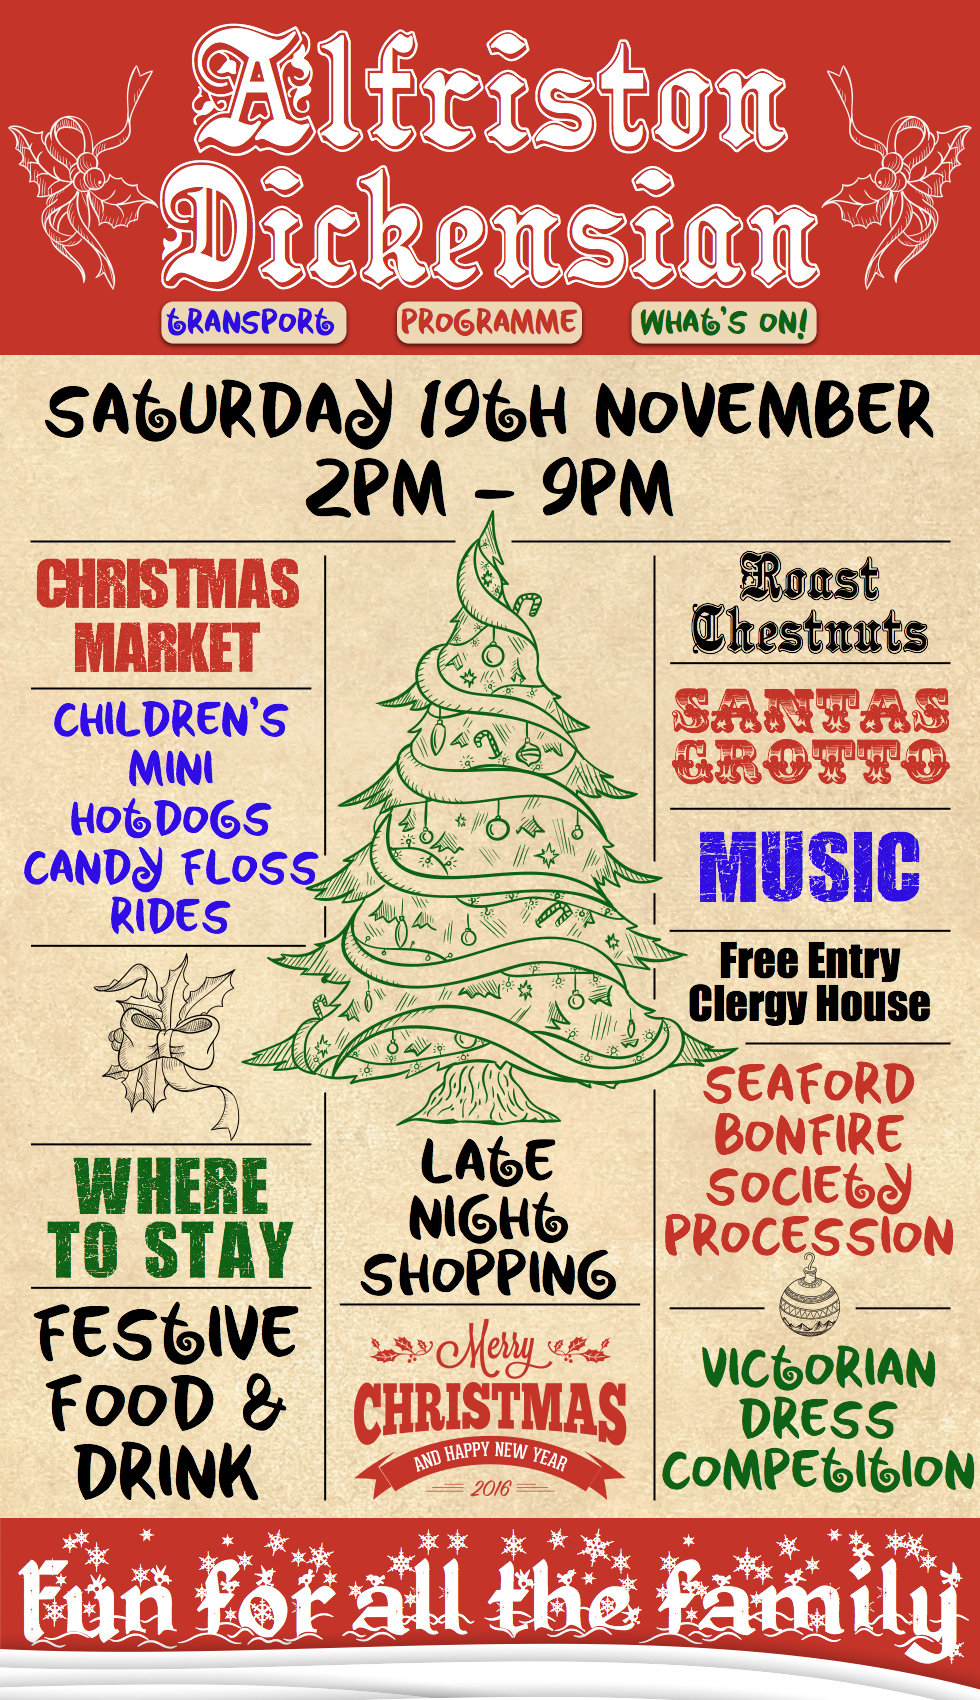 Alfriston Dickensian 19th November 2016 Father Christmas Market Santa Bonfire Procession Food and Drink